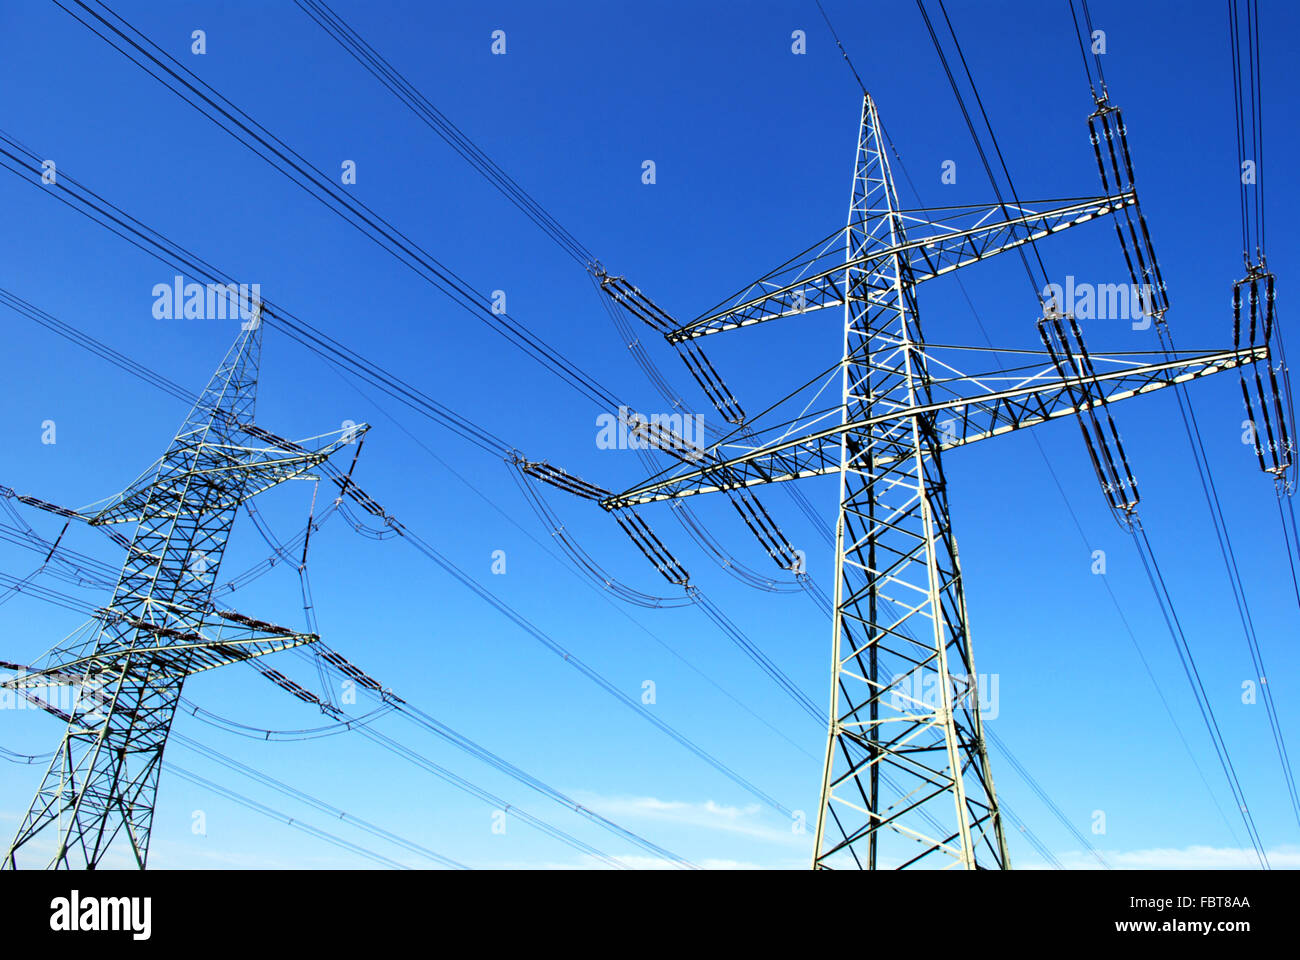 two pylons - Stock Image